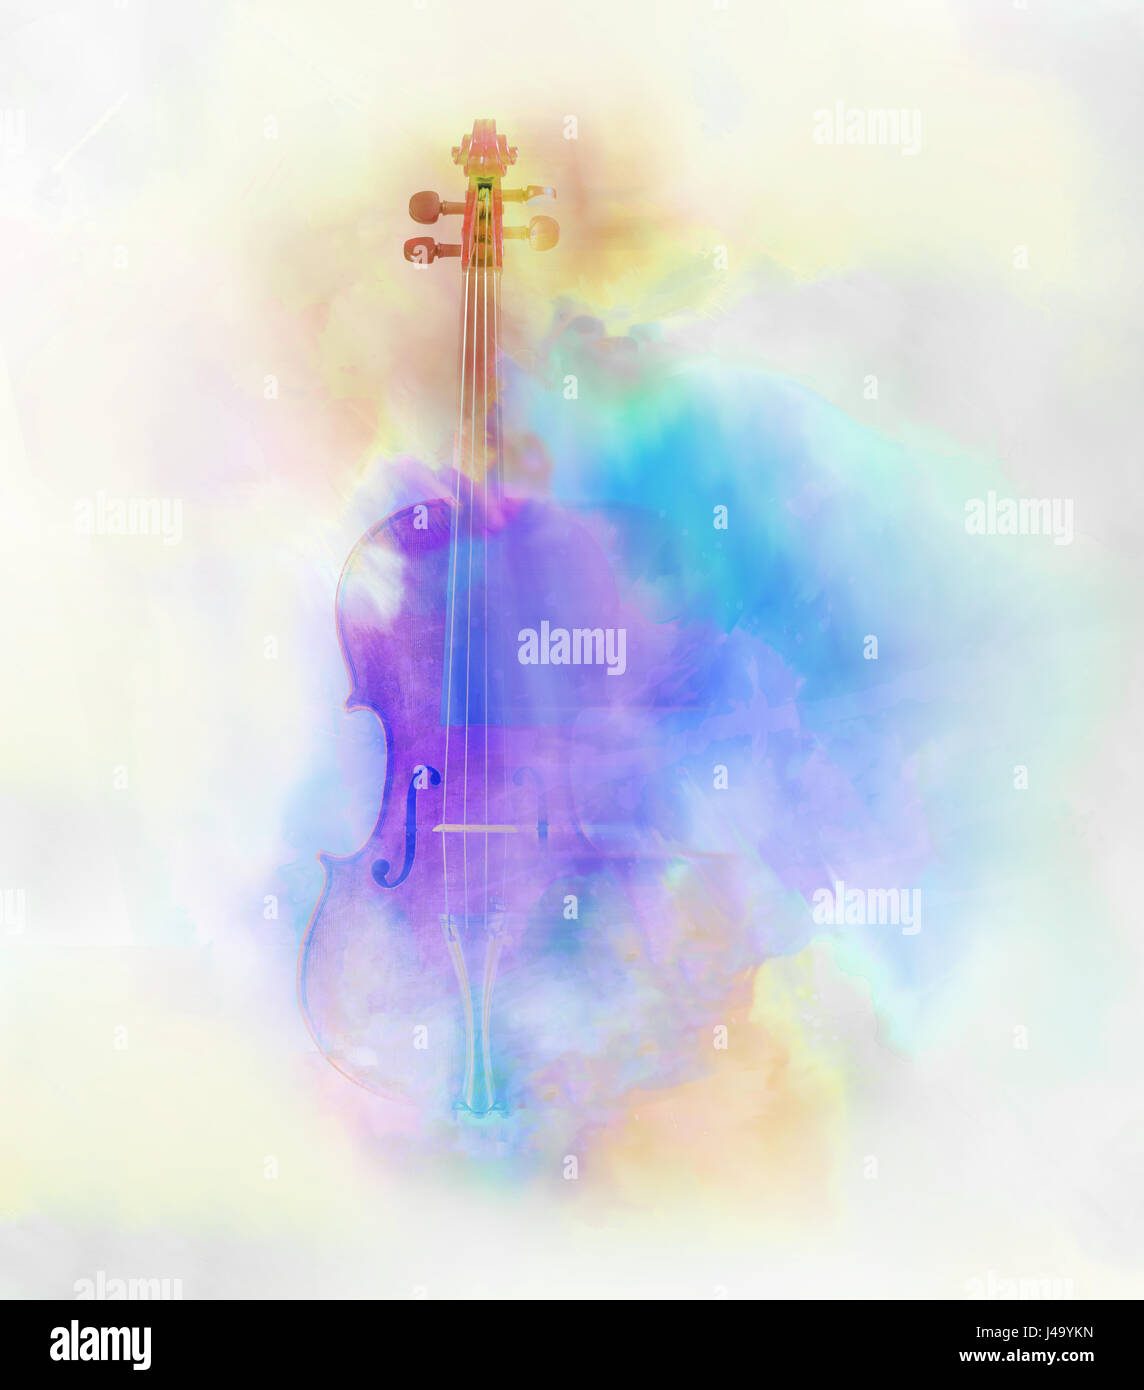 Water color image of a violin with a dream like feel. - Stock Image